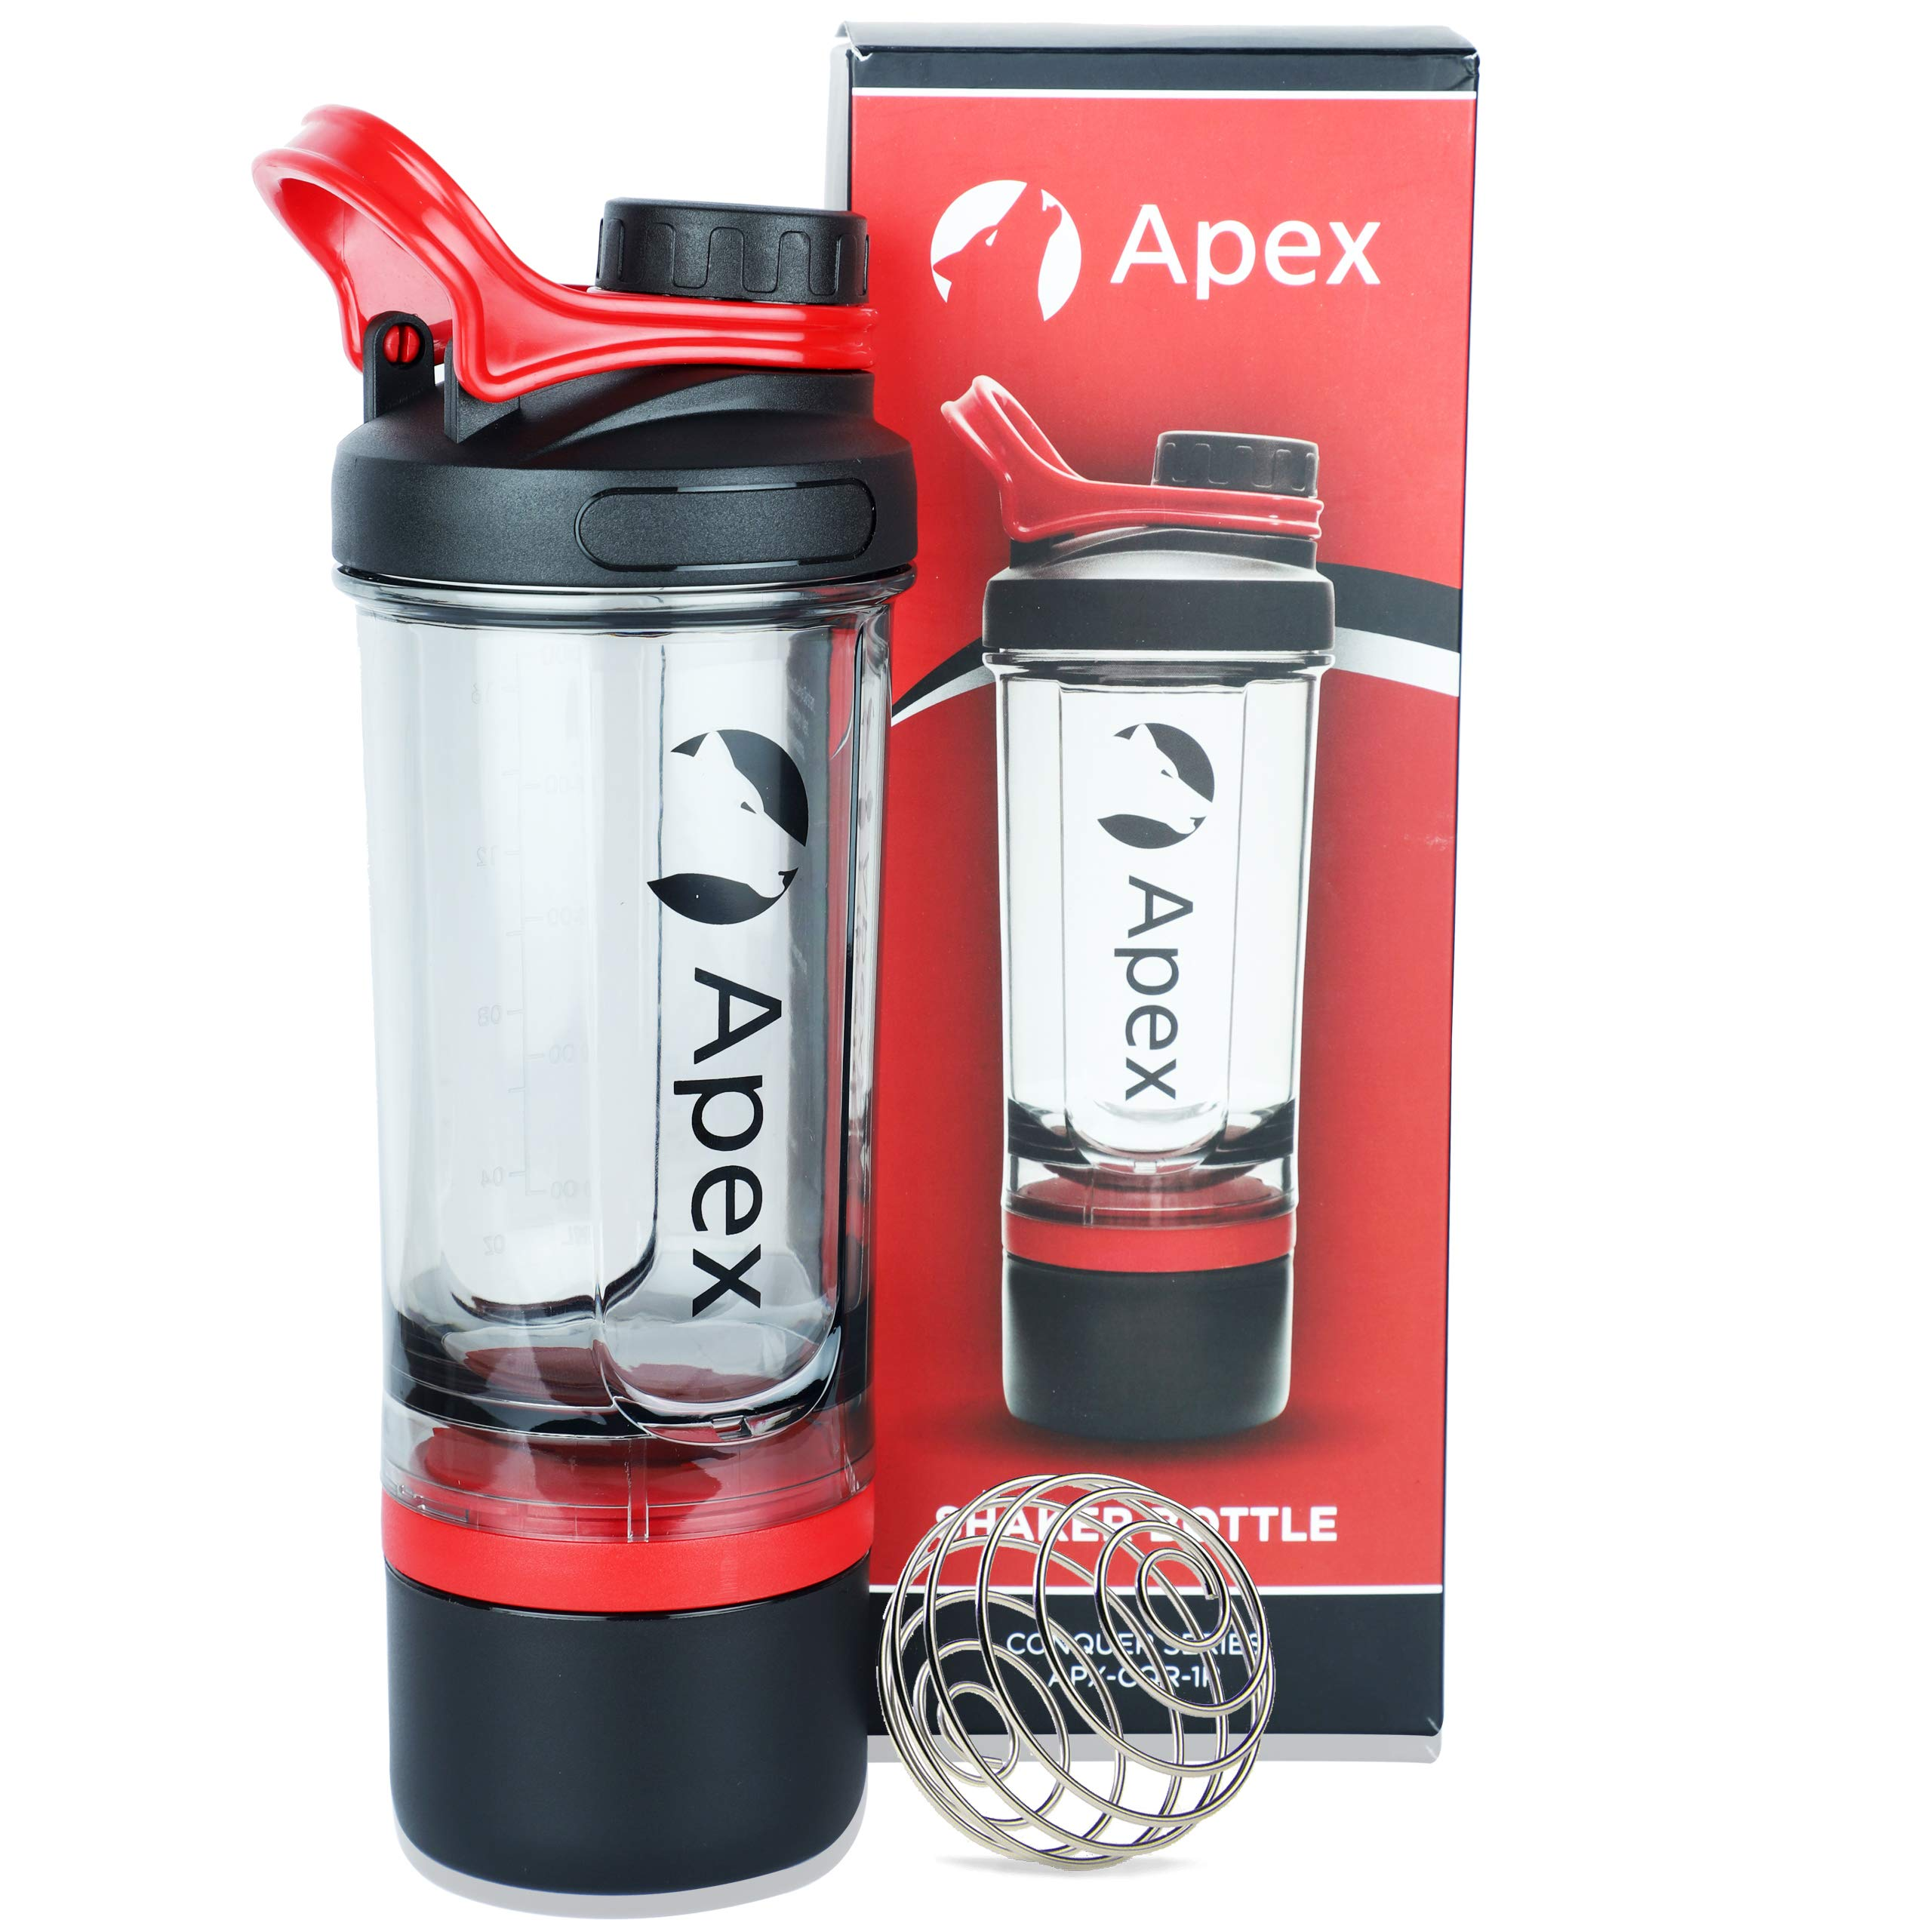 Amazon price history for Apex Protein Shaker Bottle for Gym BPA Free 100% Leak-Proof Design Embossed Measurement Scale; Comes with 2 Extra Compartment Storage and Wire Blender Ball Mixer for Whey & BCAA; 600 ml